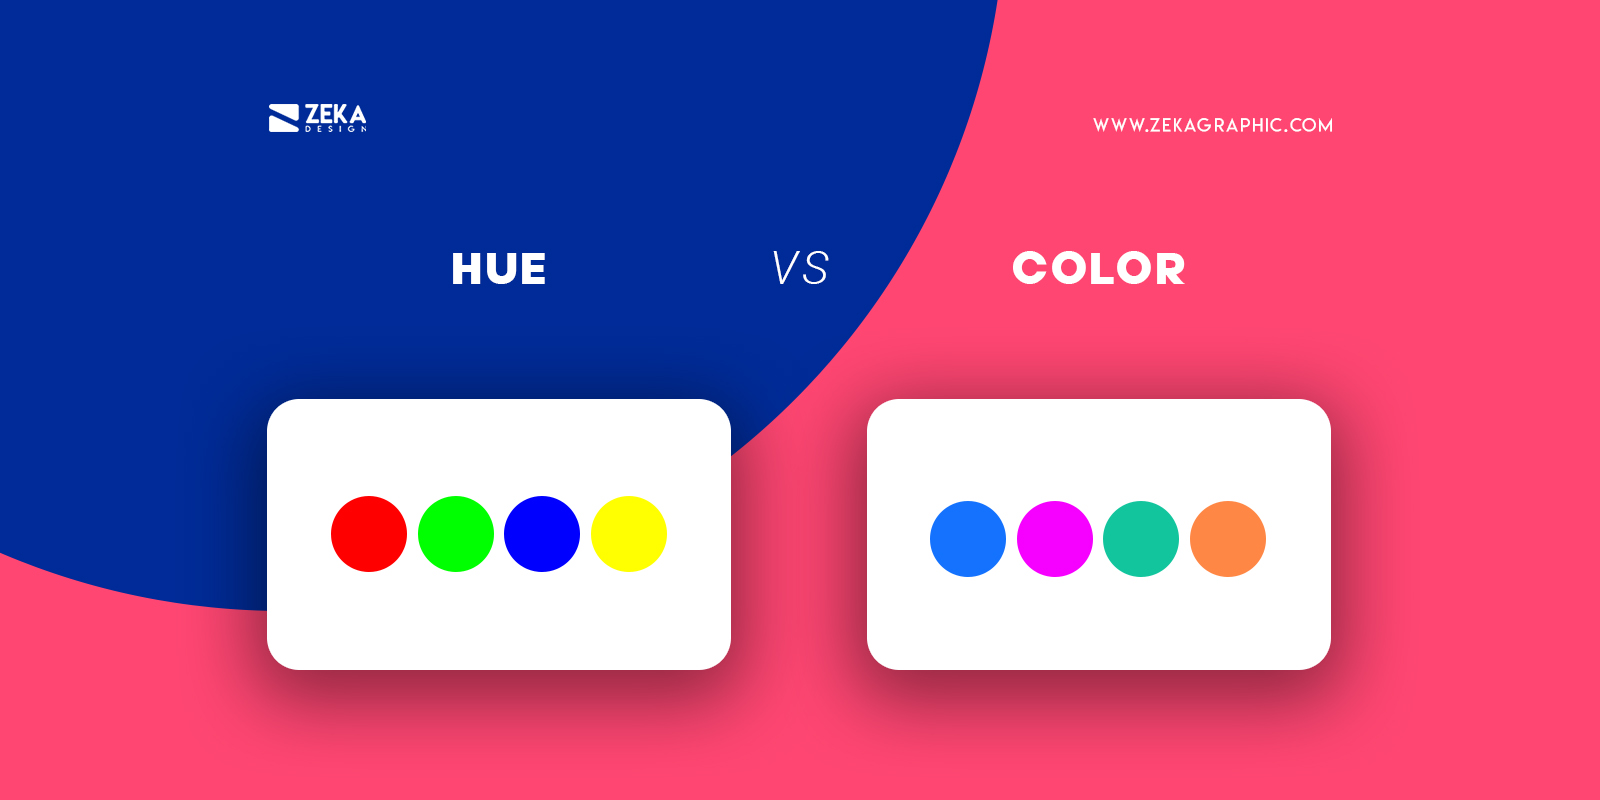 Hue vs Color Graphic Design Terms Explained